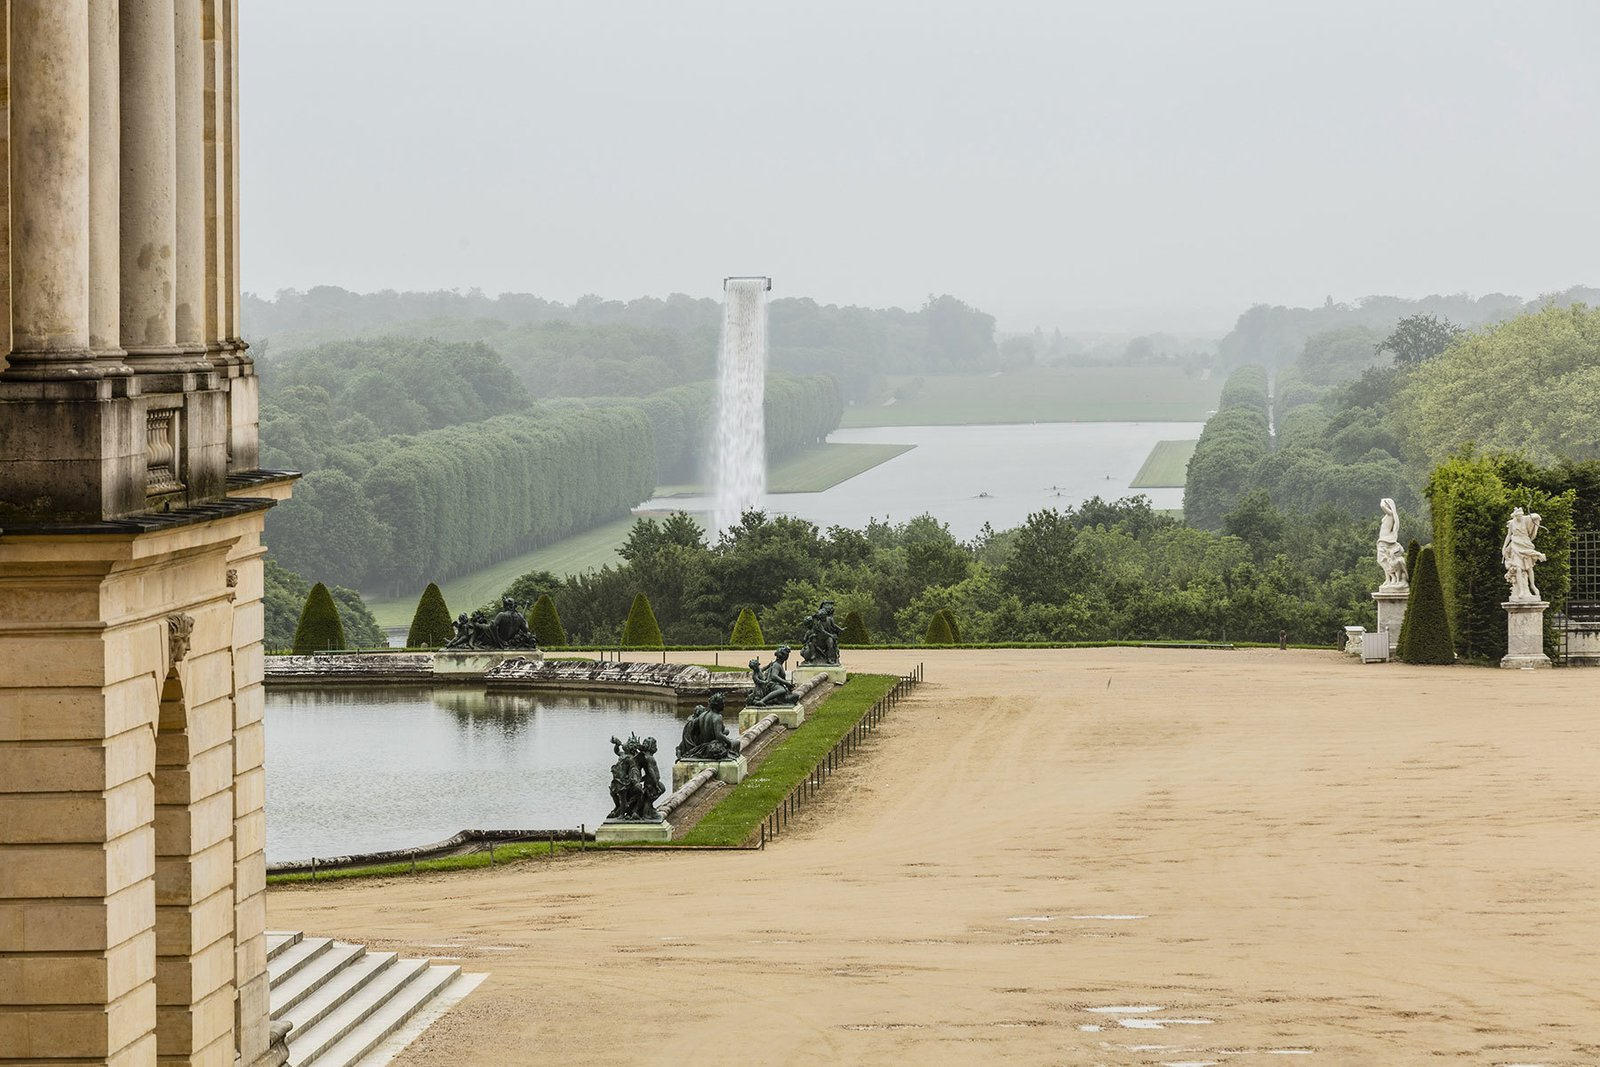 Photo 2 of 5 in Olafur Eliasson Gives Versailles a Surreal Aura